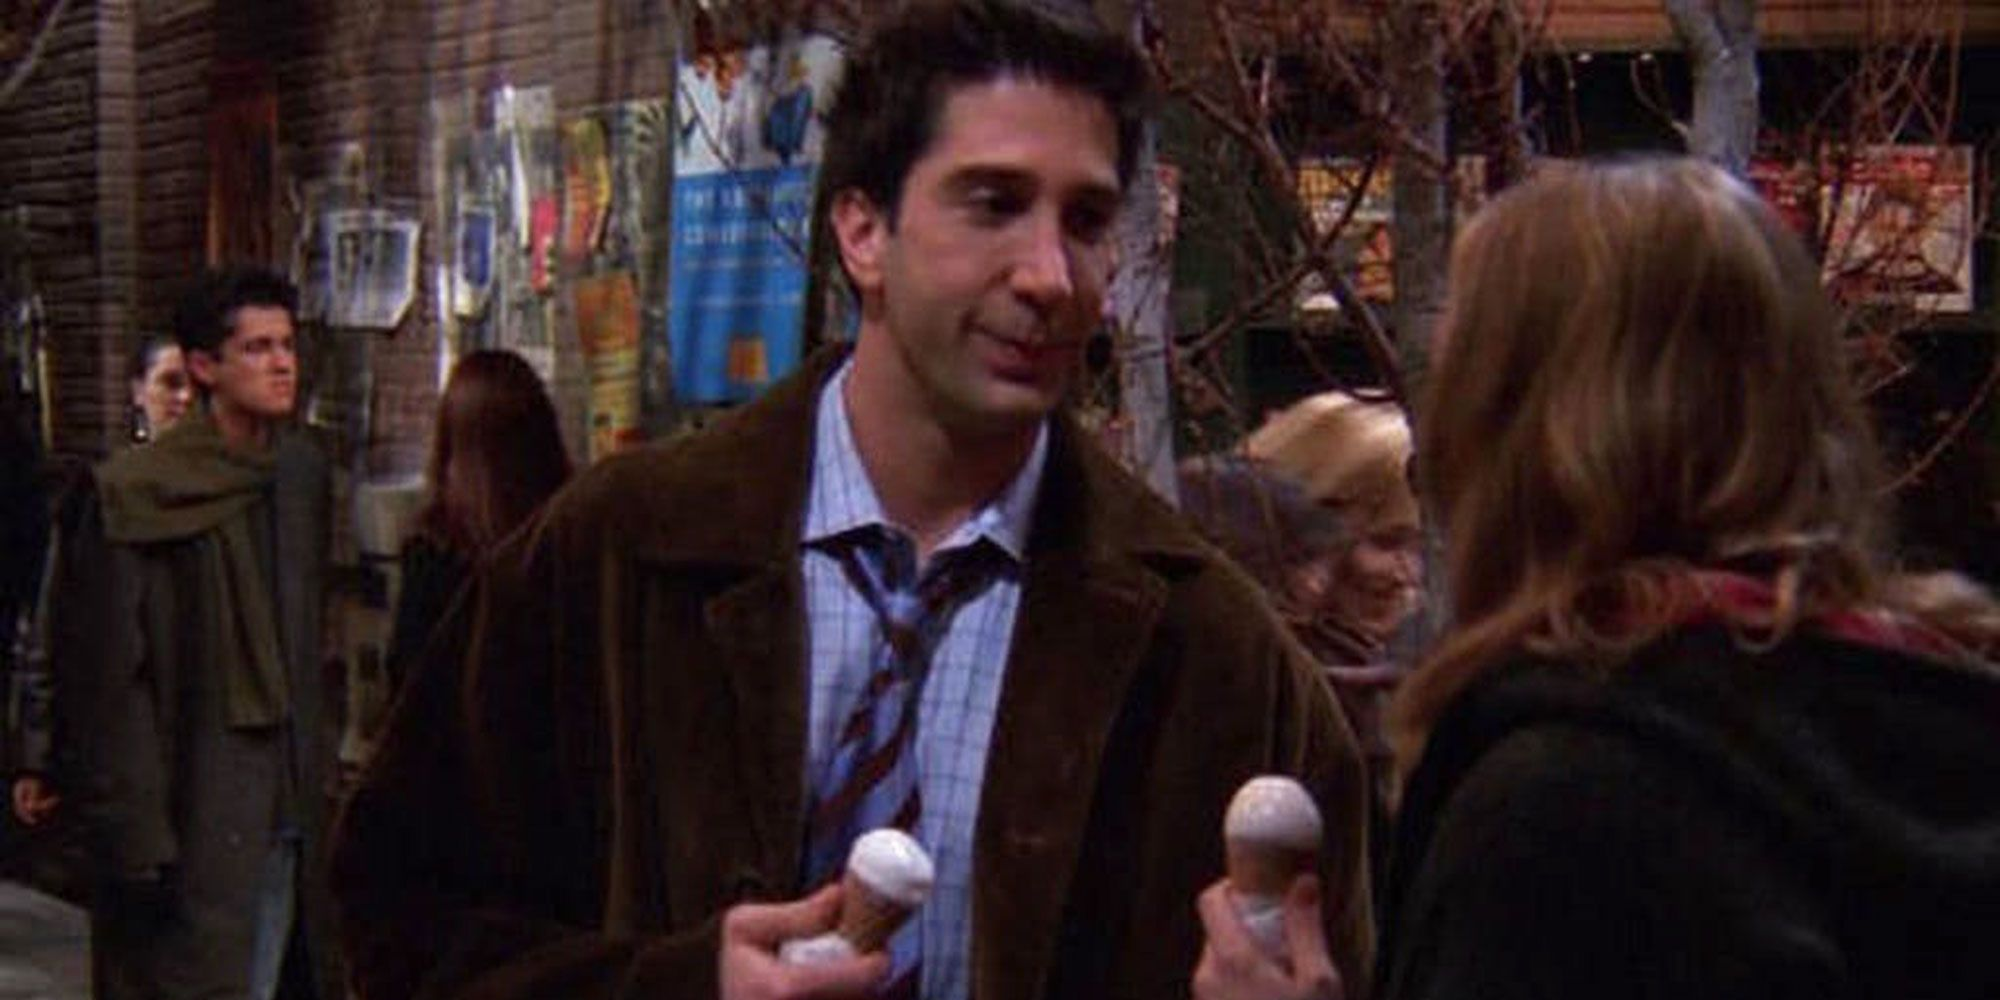 Ross lied about not liking ice cream.